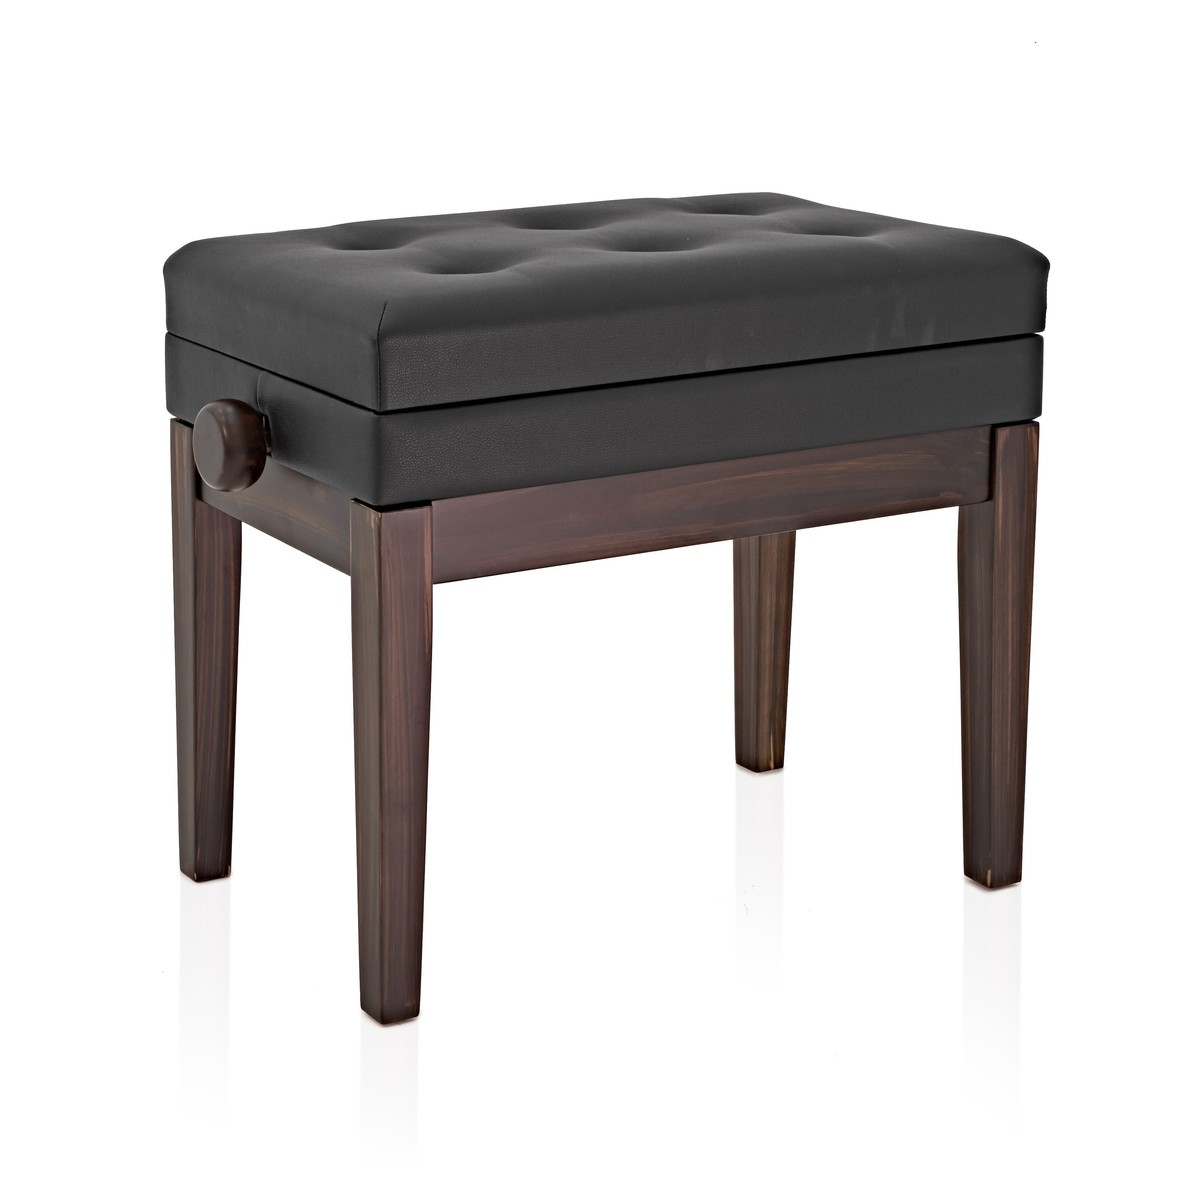 Deluxe Piano Stool With Storage By Gear4music Rw B